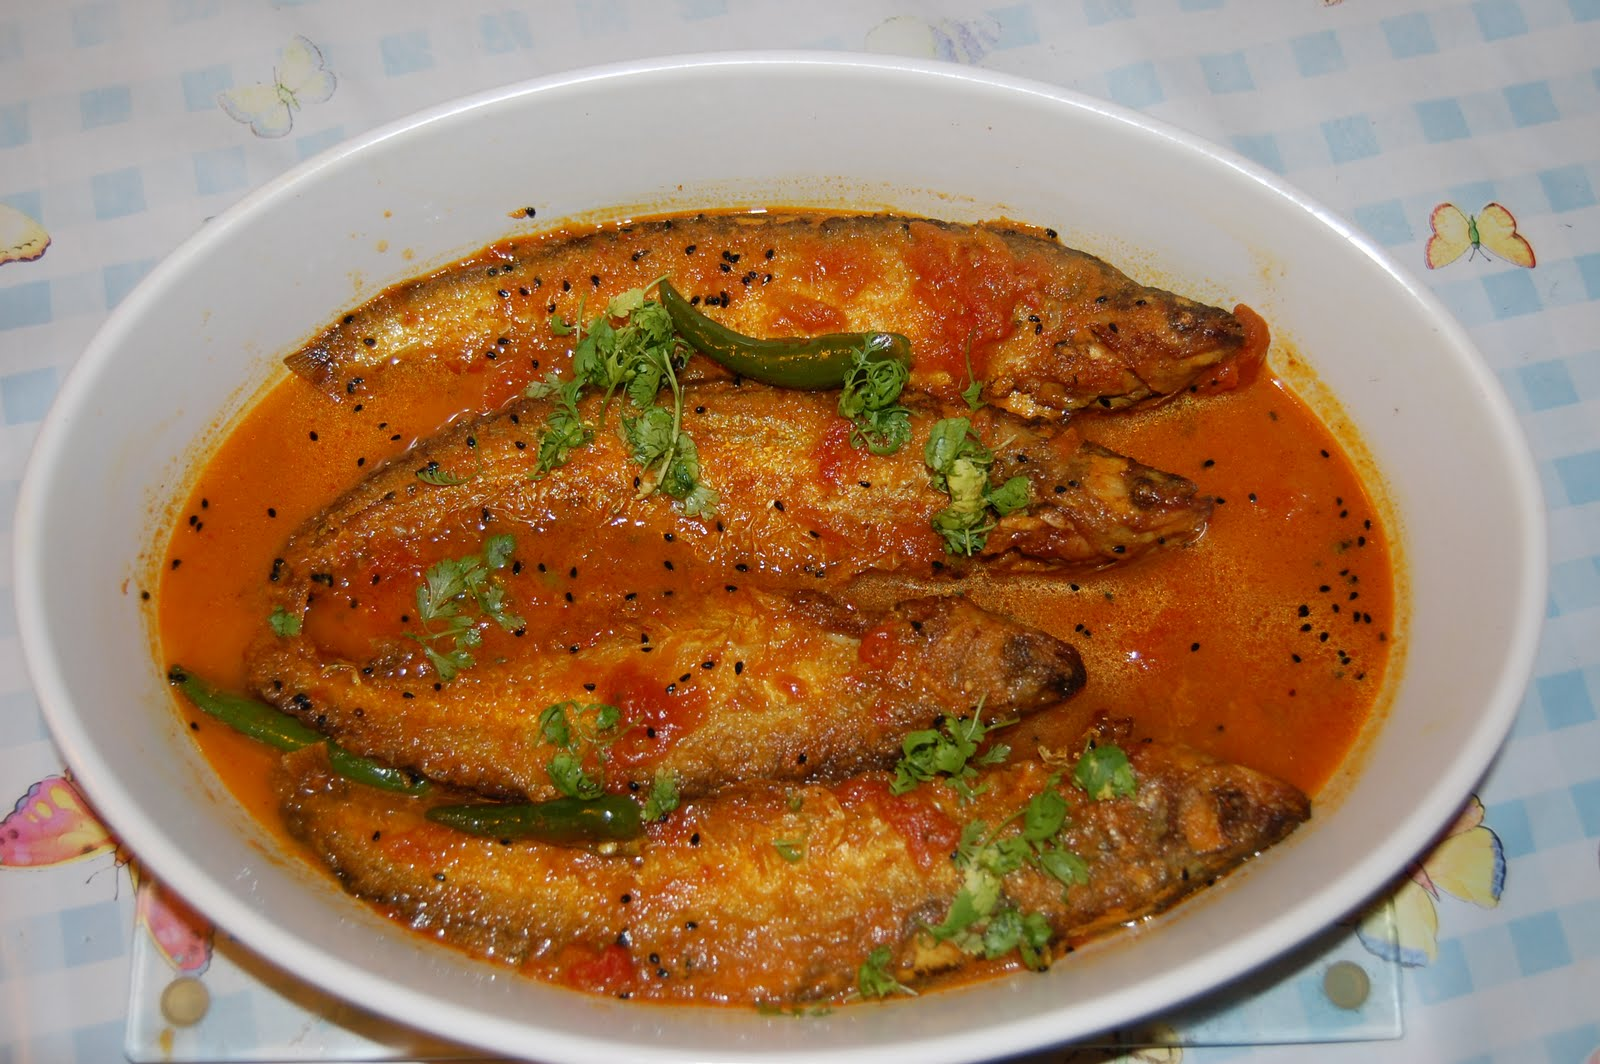 Recipes from the world bengali style fish curry pabda fish bengali style fish curry pabda fish forumfinder Choice Image